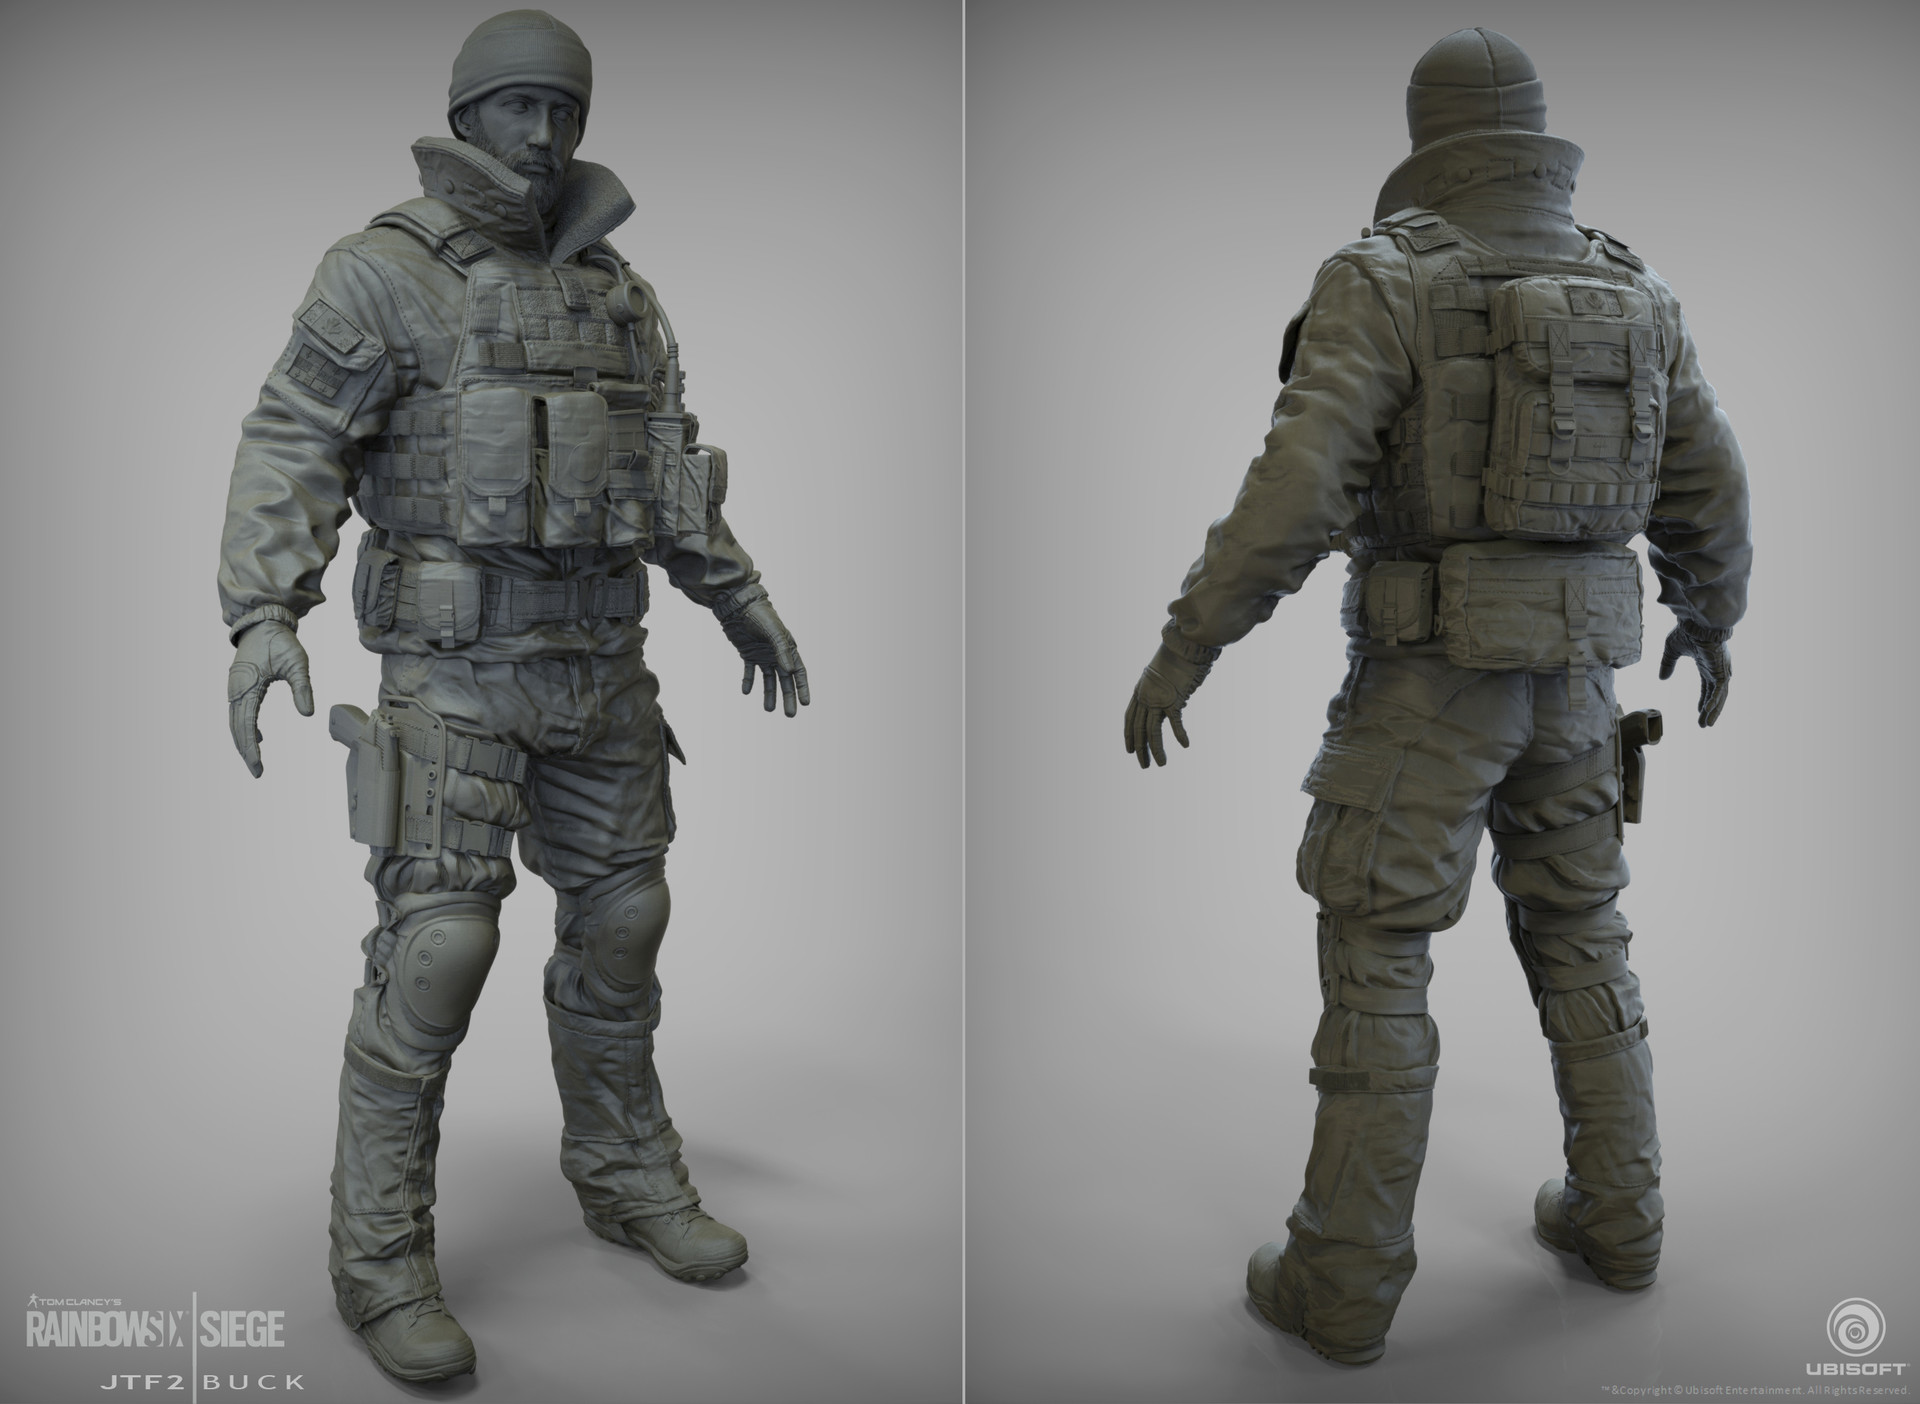 J mark jtf2 buck sculpt